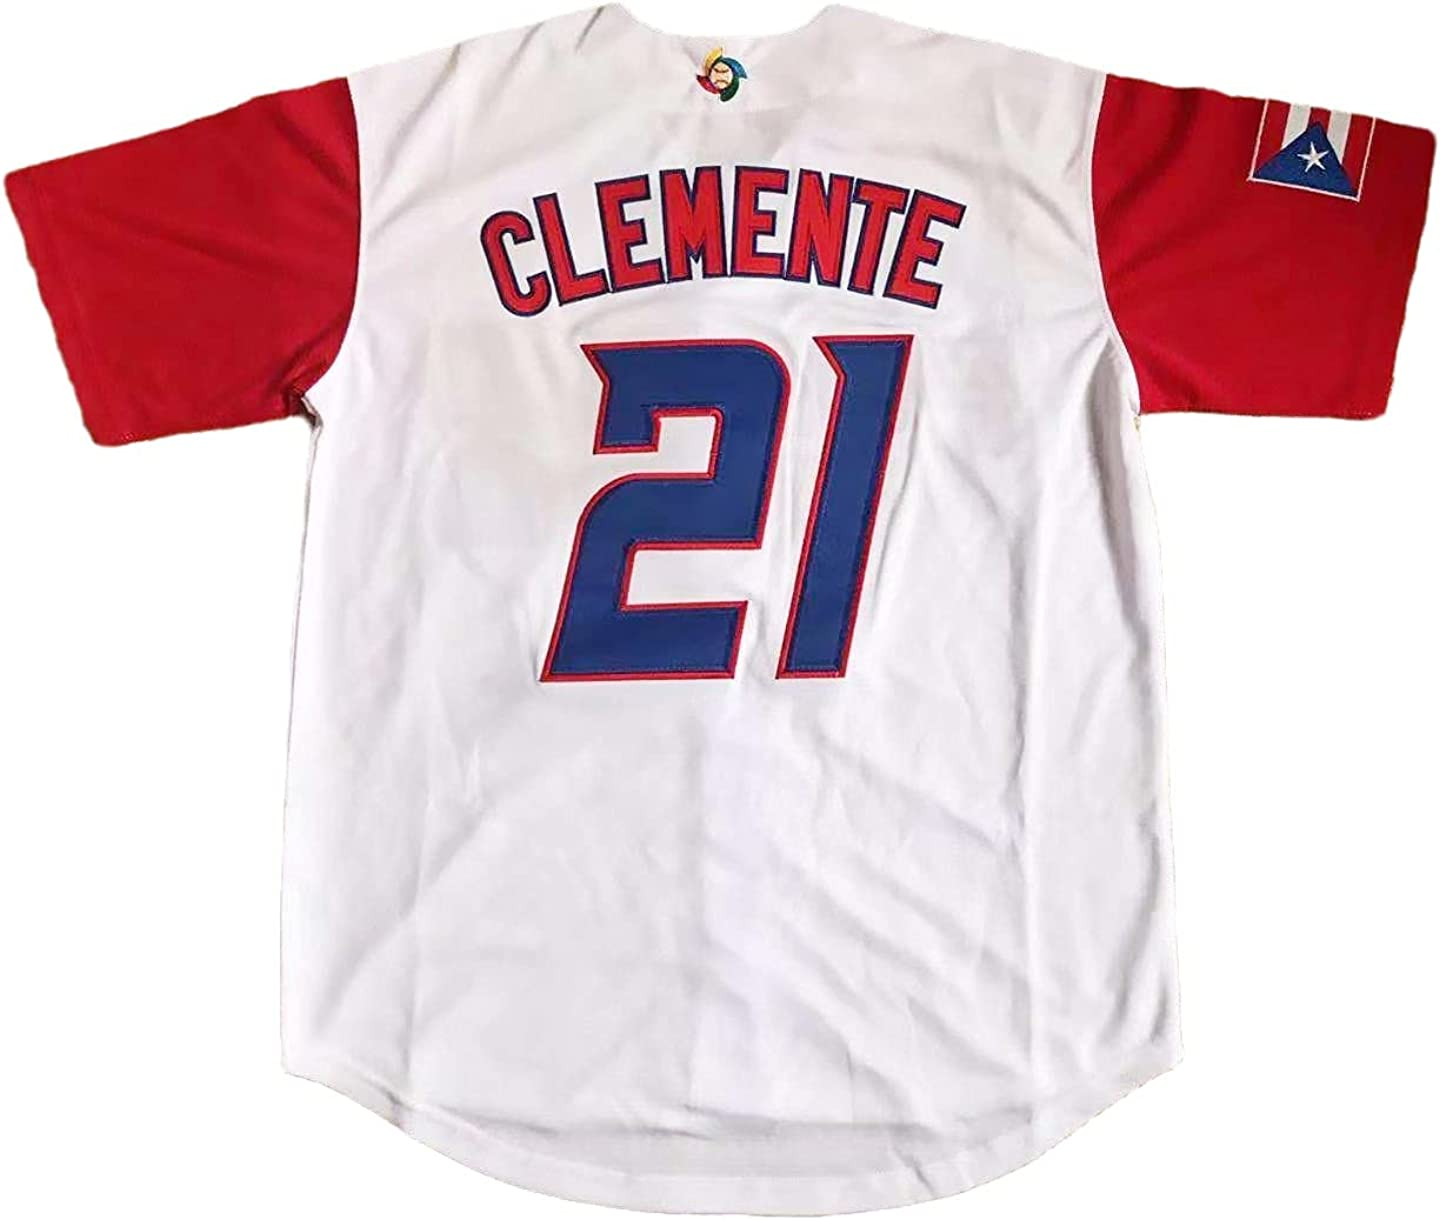 Mens Puerto Rico #21 Roberto World Now free shipping Free shipping anywhere in the nation Basebal Clemente Classic Game